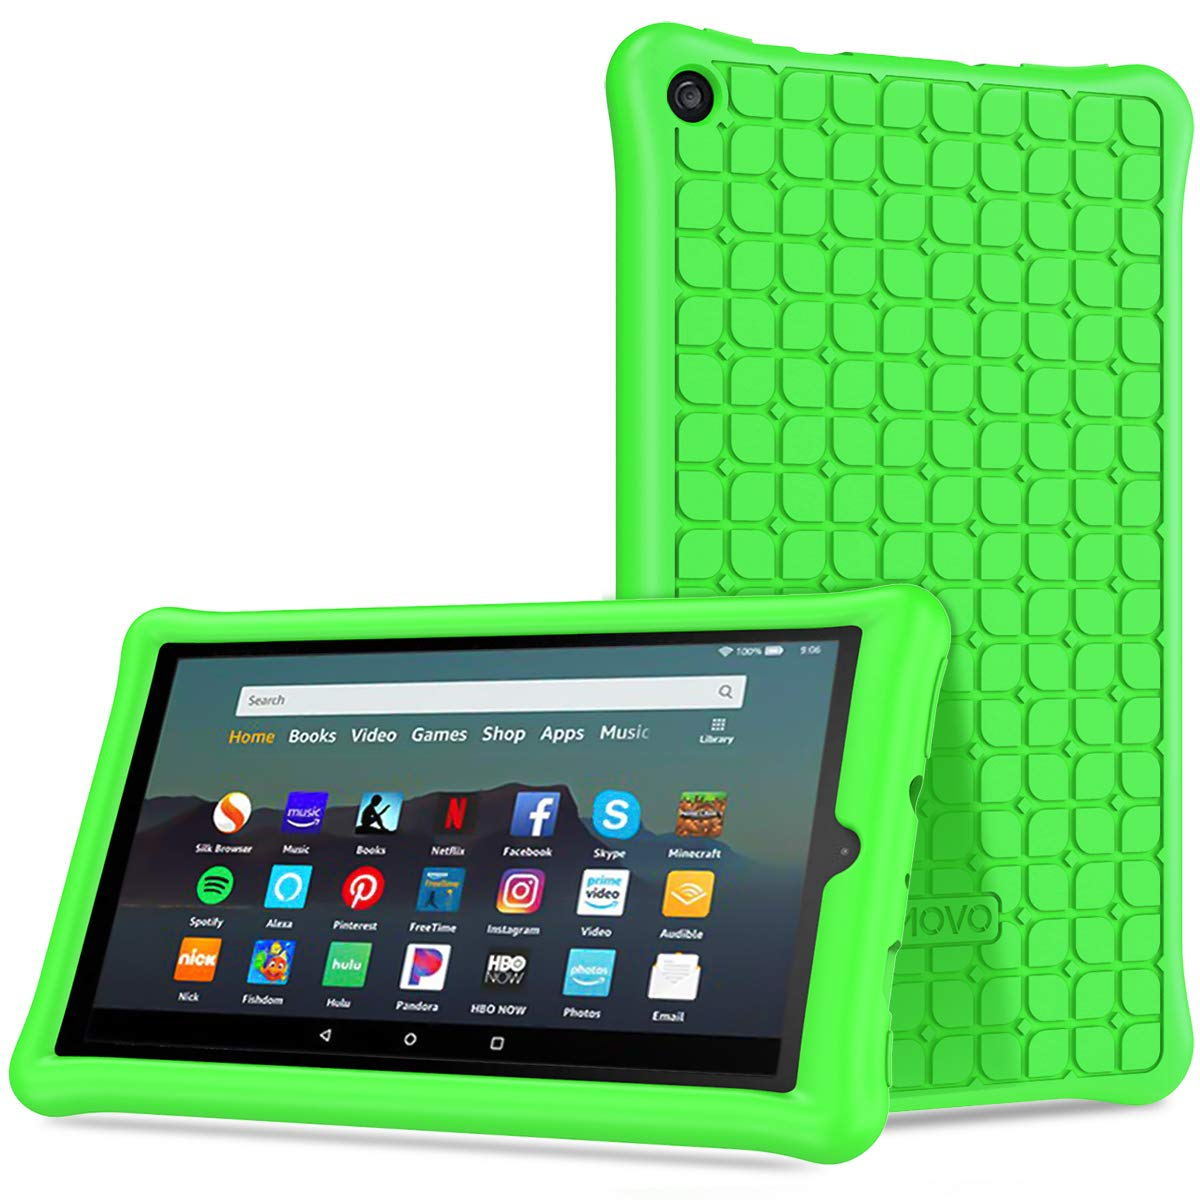 TiMOVO Case Fits All-New Fire 7 Tablet (9th Generation, 2019 Release) - Anti Slip Shock Proof Soft Silicone Shell Cover Kids Protective Case Fit Amazon Fire 7 Tablet - Green